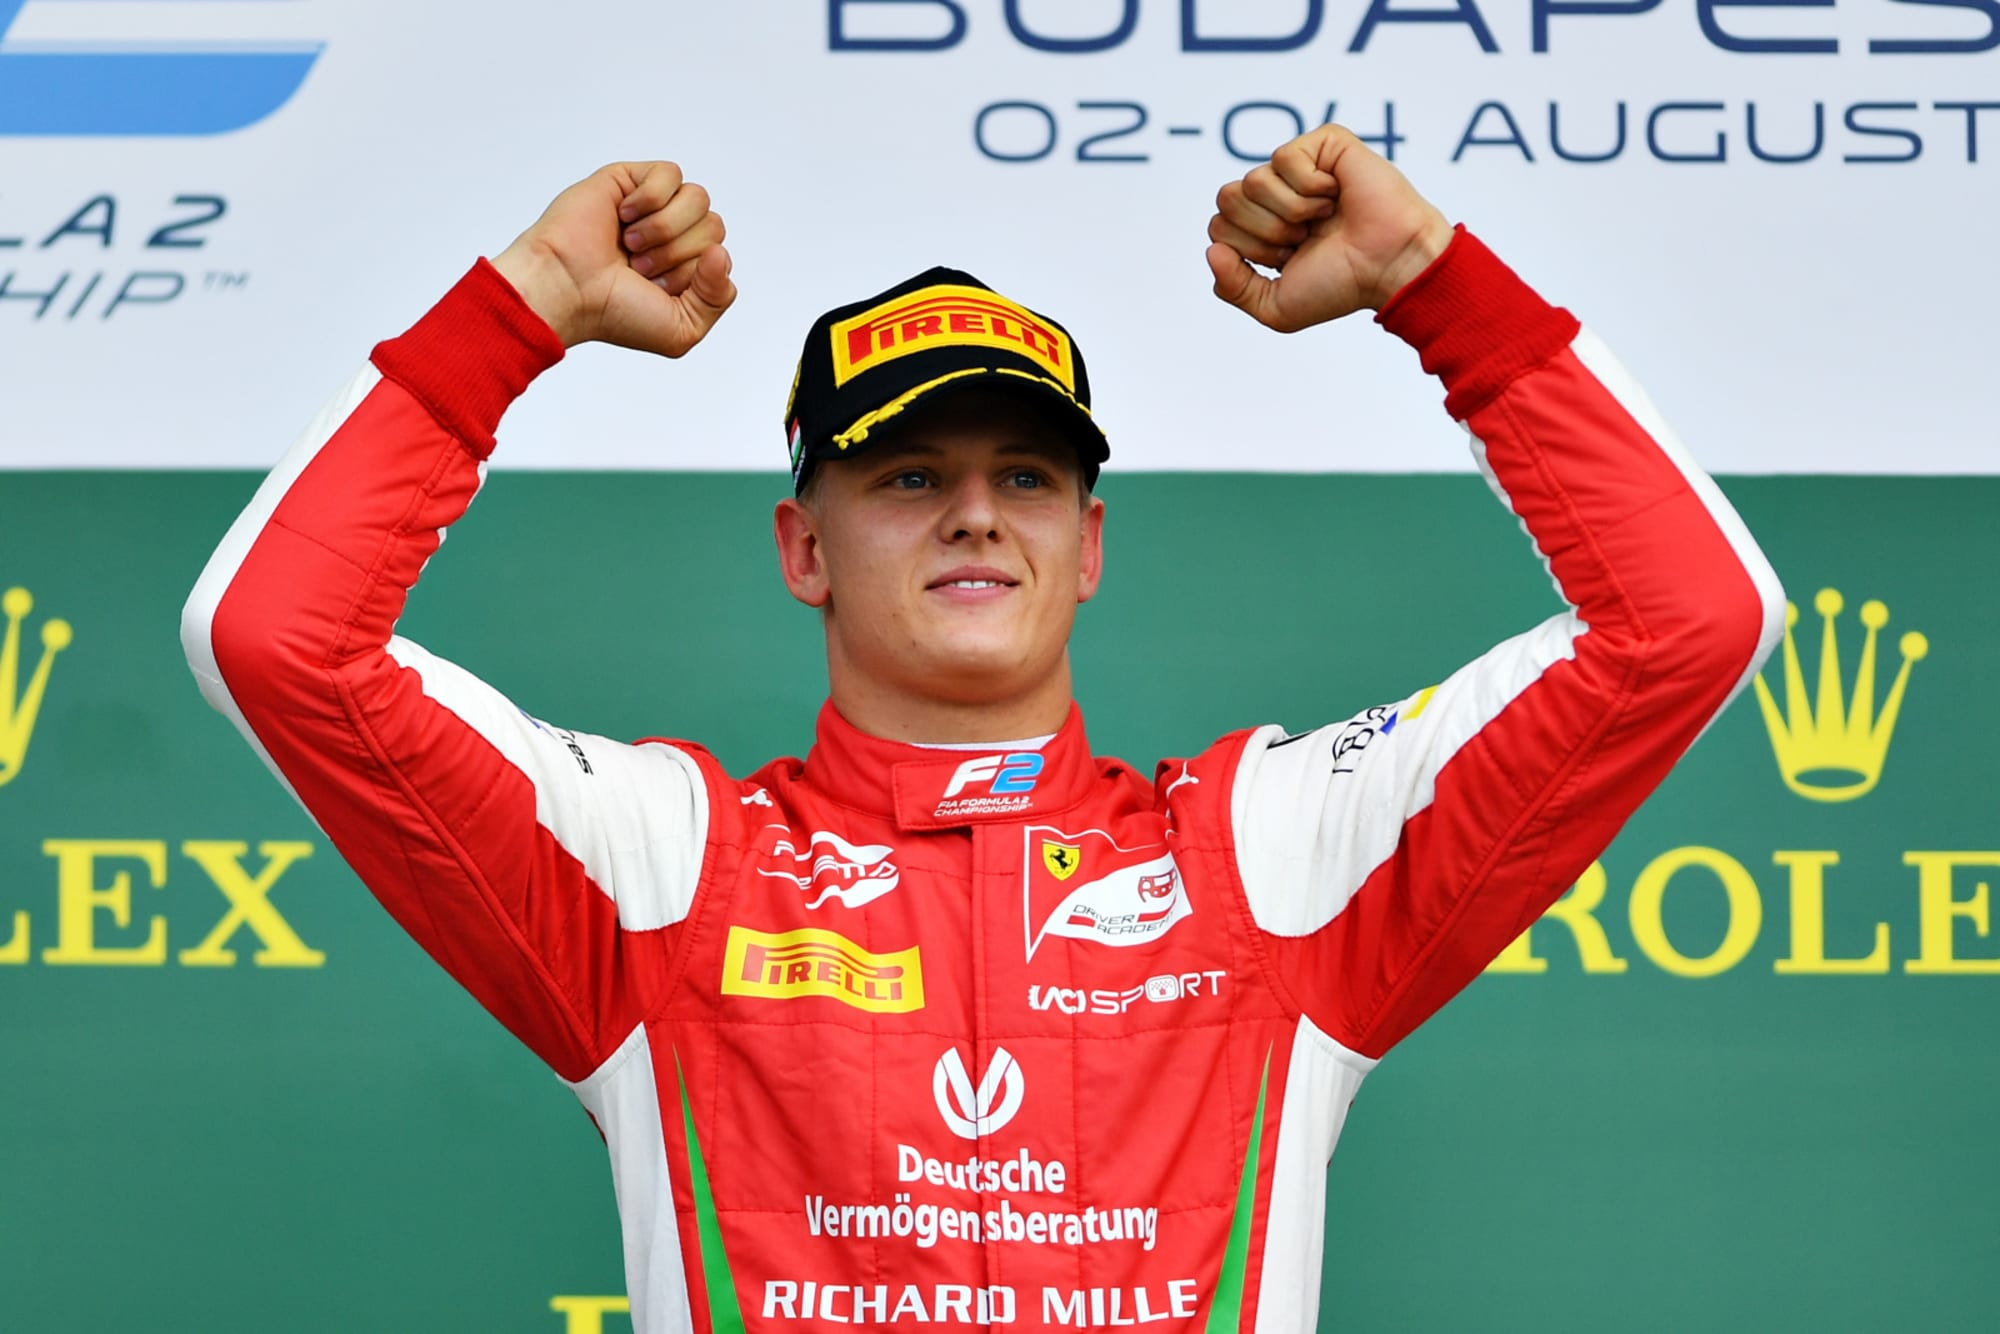 Formula 2: When will Mick Schumacher be promoted to Formula 1?